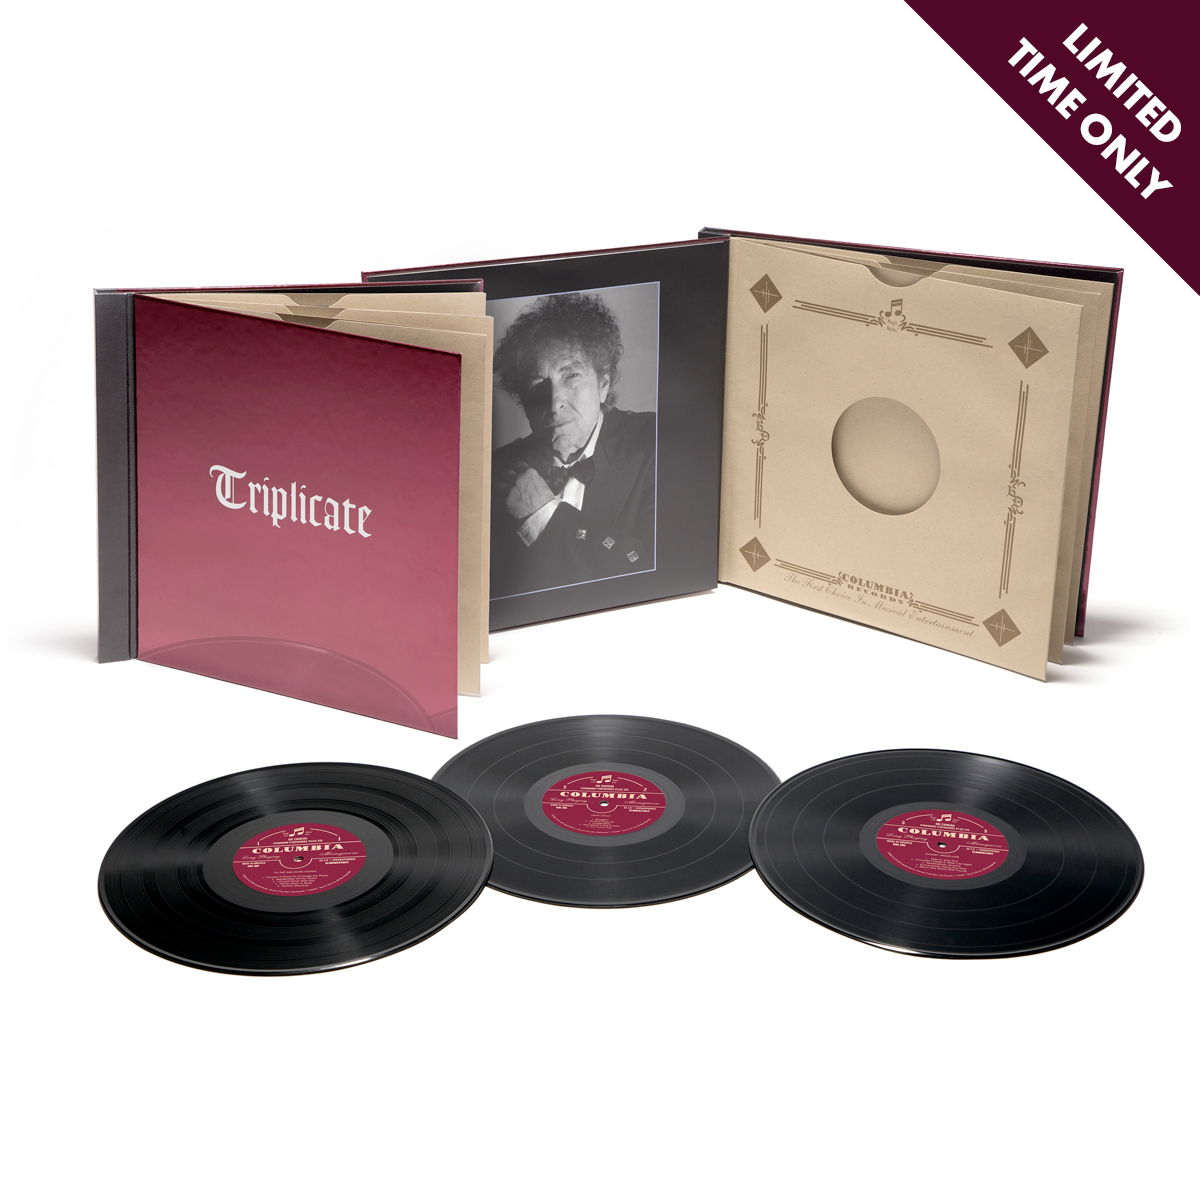 Bob Dylan: Triplicate - Deluxe Limited Vinyl